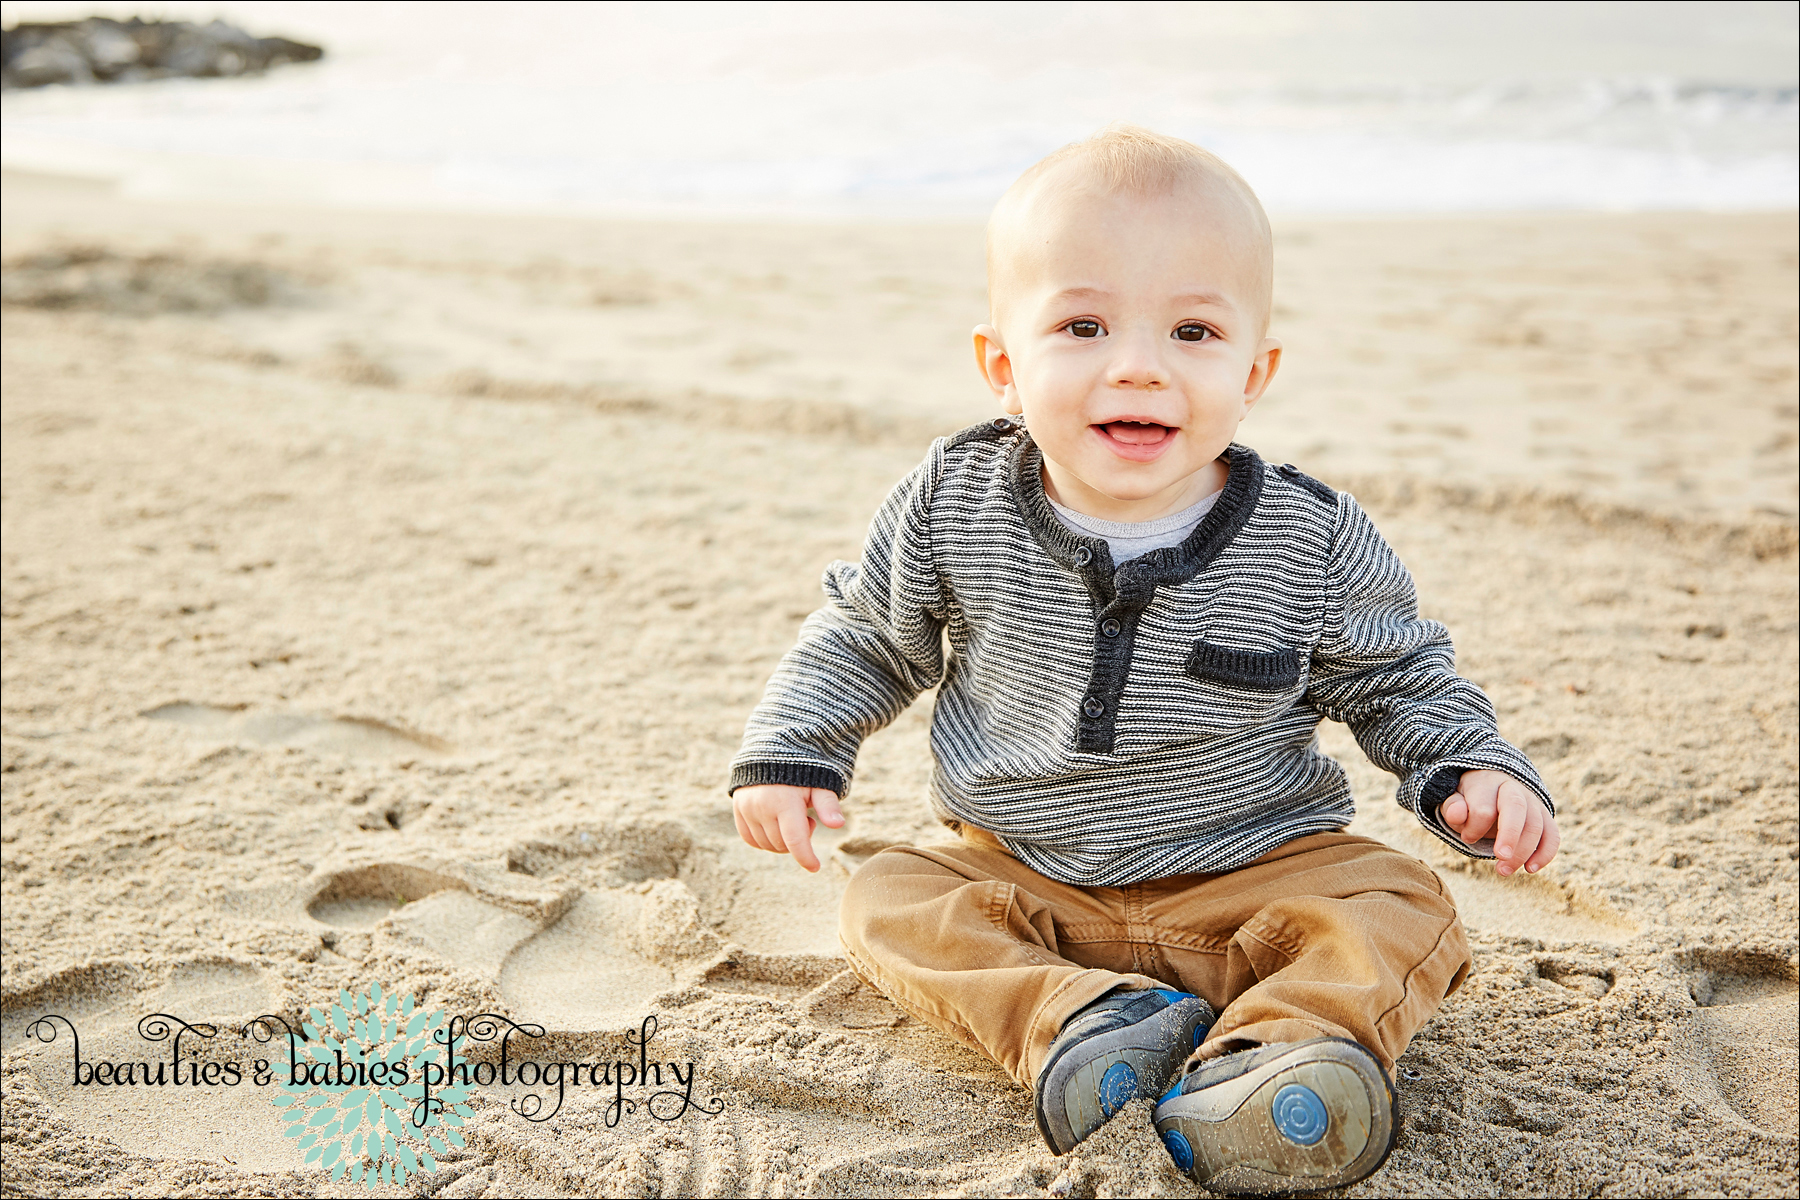 toddler play photography, kids and family photographer los angeles, Baby Photographer Los Angeles photography, Professional family portrait photographer Los Angeles, Santa Monica Beach photography Los Angeles photographer, chidlrens photographer Los Angeles